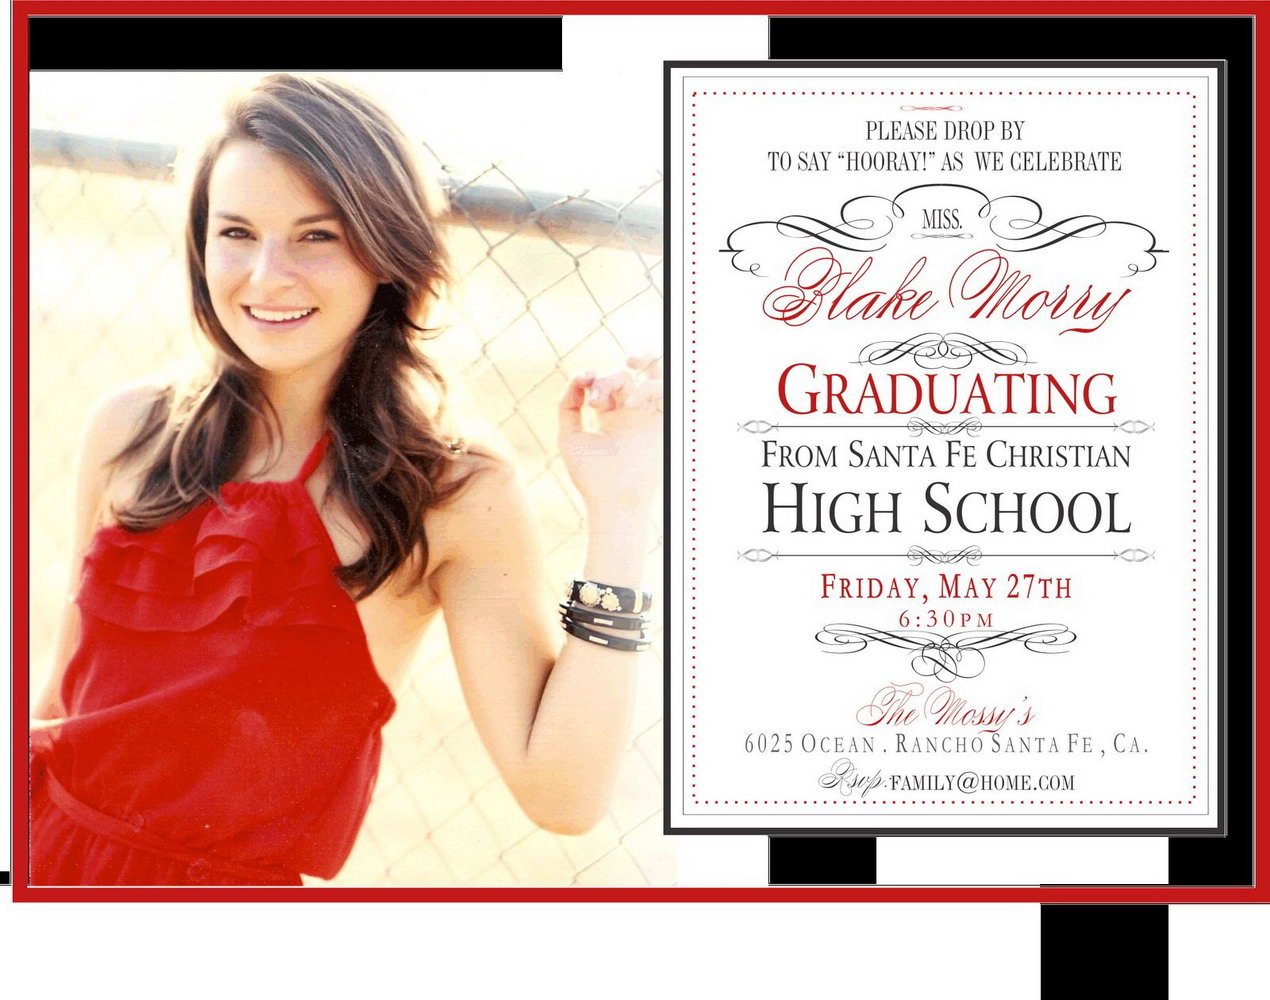 High School Graduation Announcements Templates